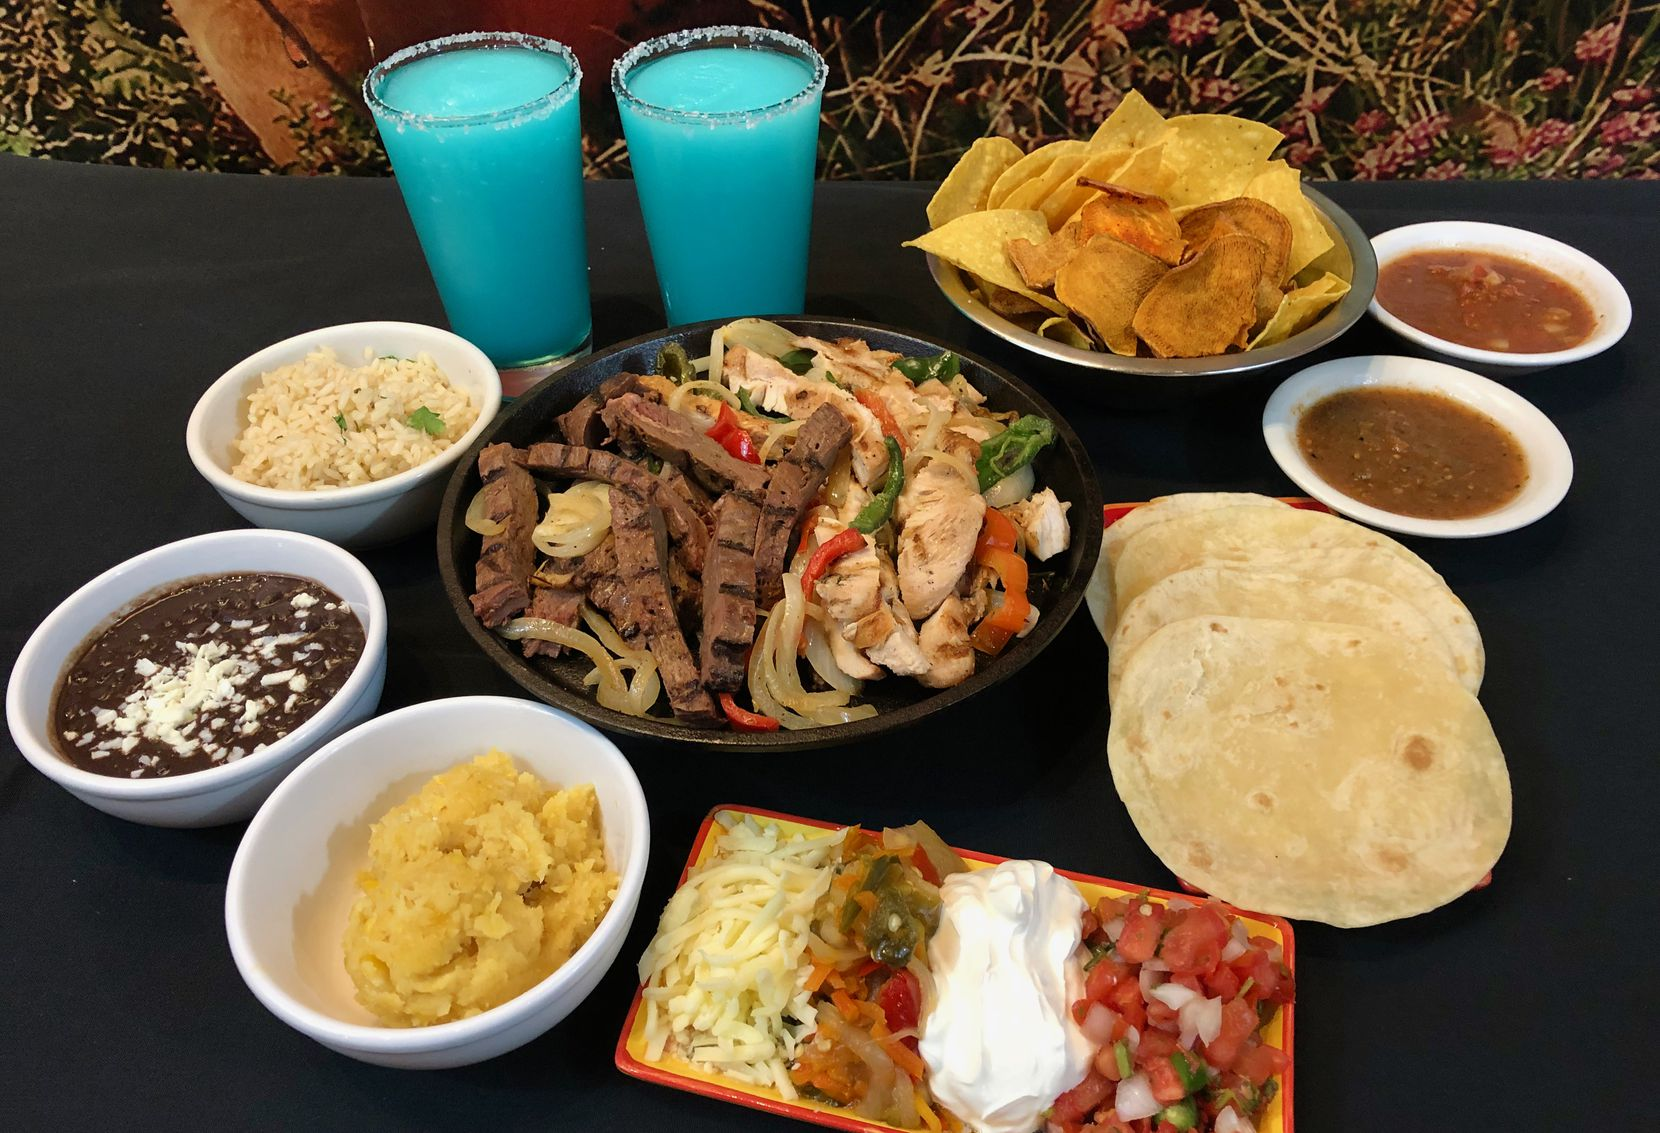 Blue Mesa Grill offers a free quart of blue margaritas with the purchase of a $55 family pack.